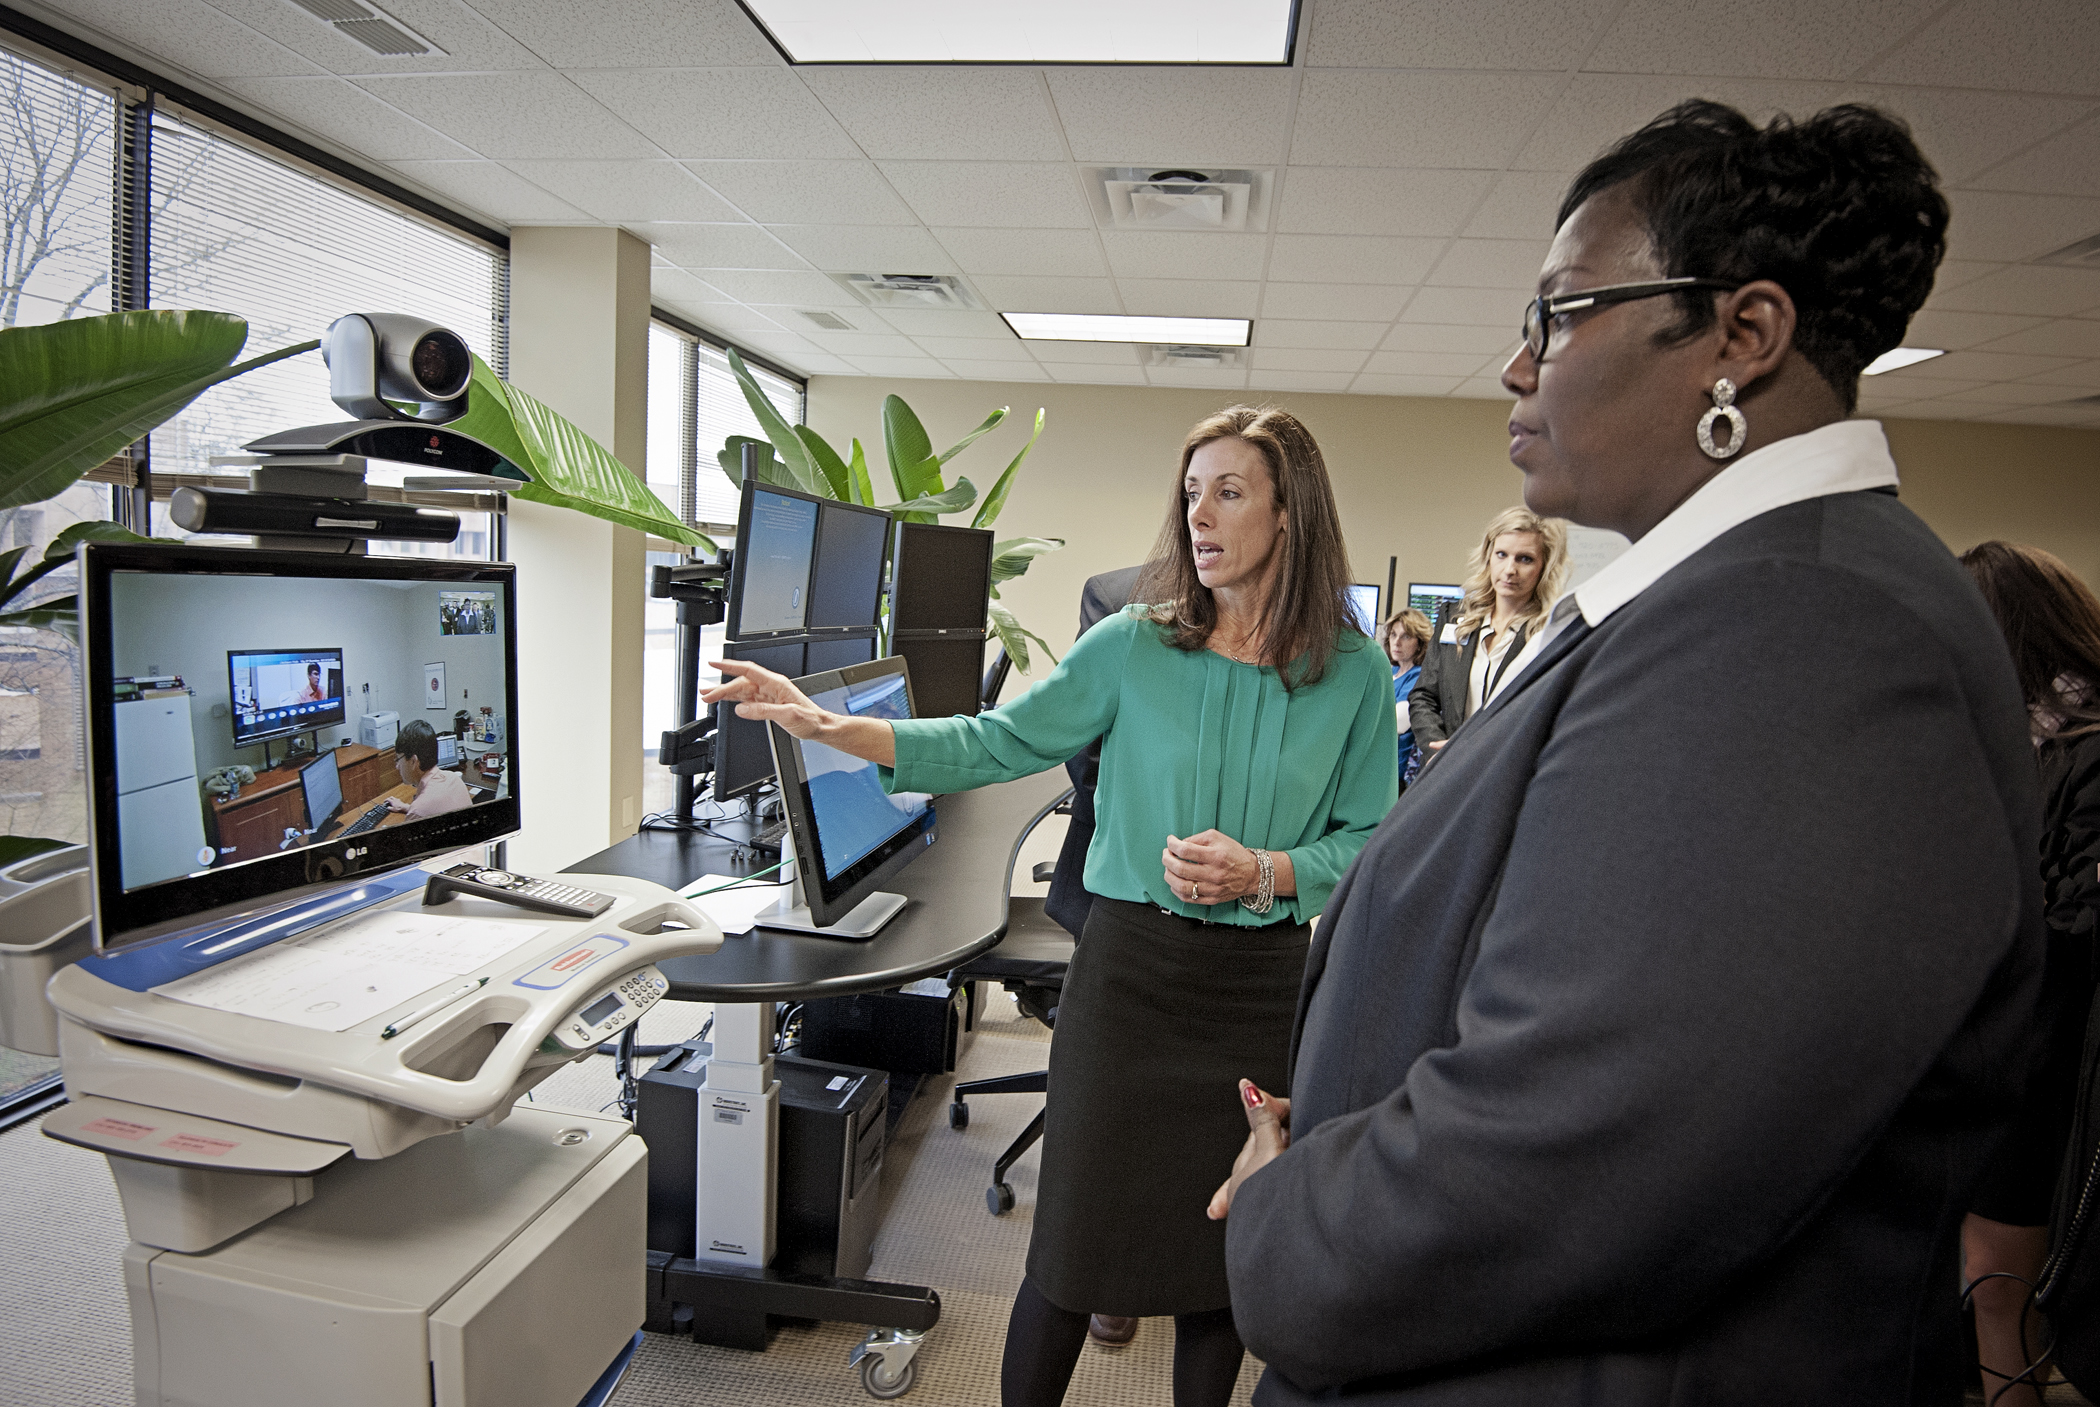 Dr. Kristi Henderson, left, UMMC director of Telehealth and chief advanced practice officer, and Trina George, right, Mississippi state USDA director of rural development, demonstrate a telehealth system.